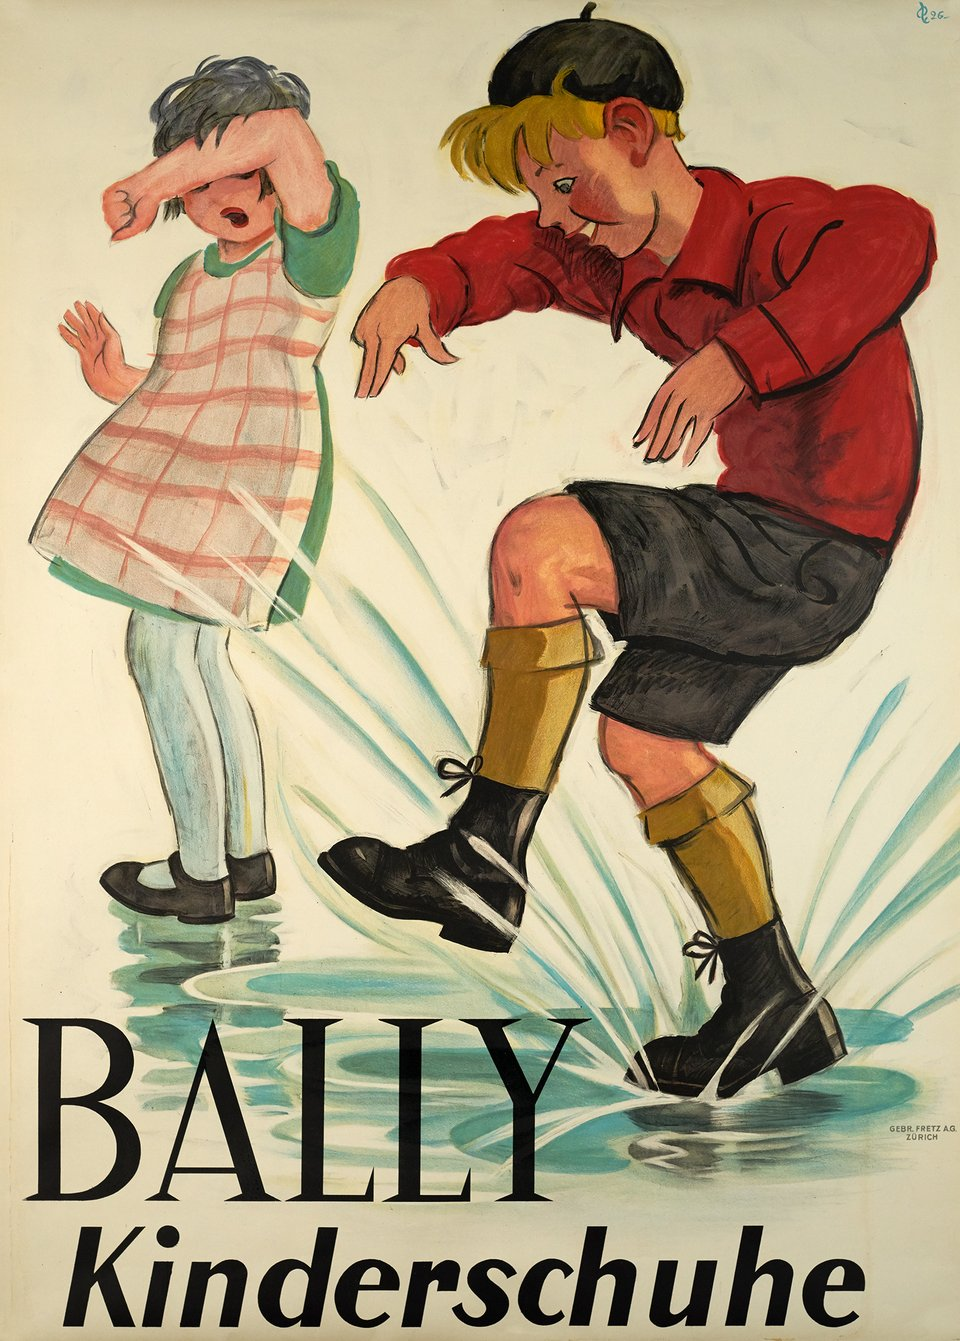 Bally, Kinderschuhe – Affiche ancienne – Hugo LAUBI – 1926